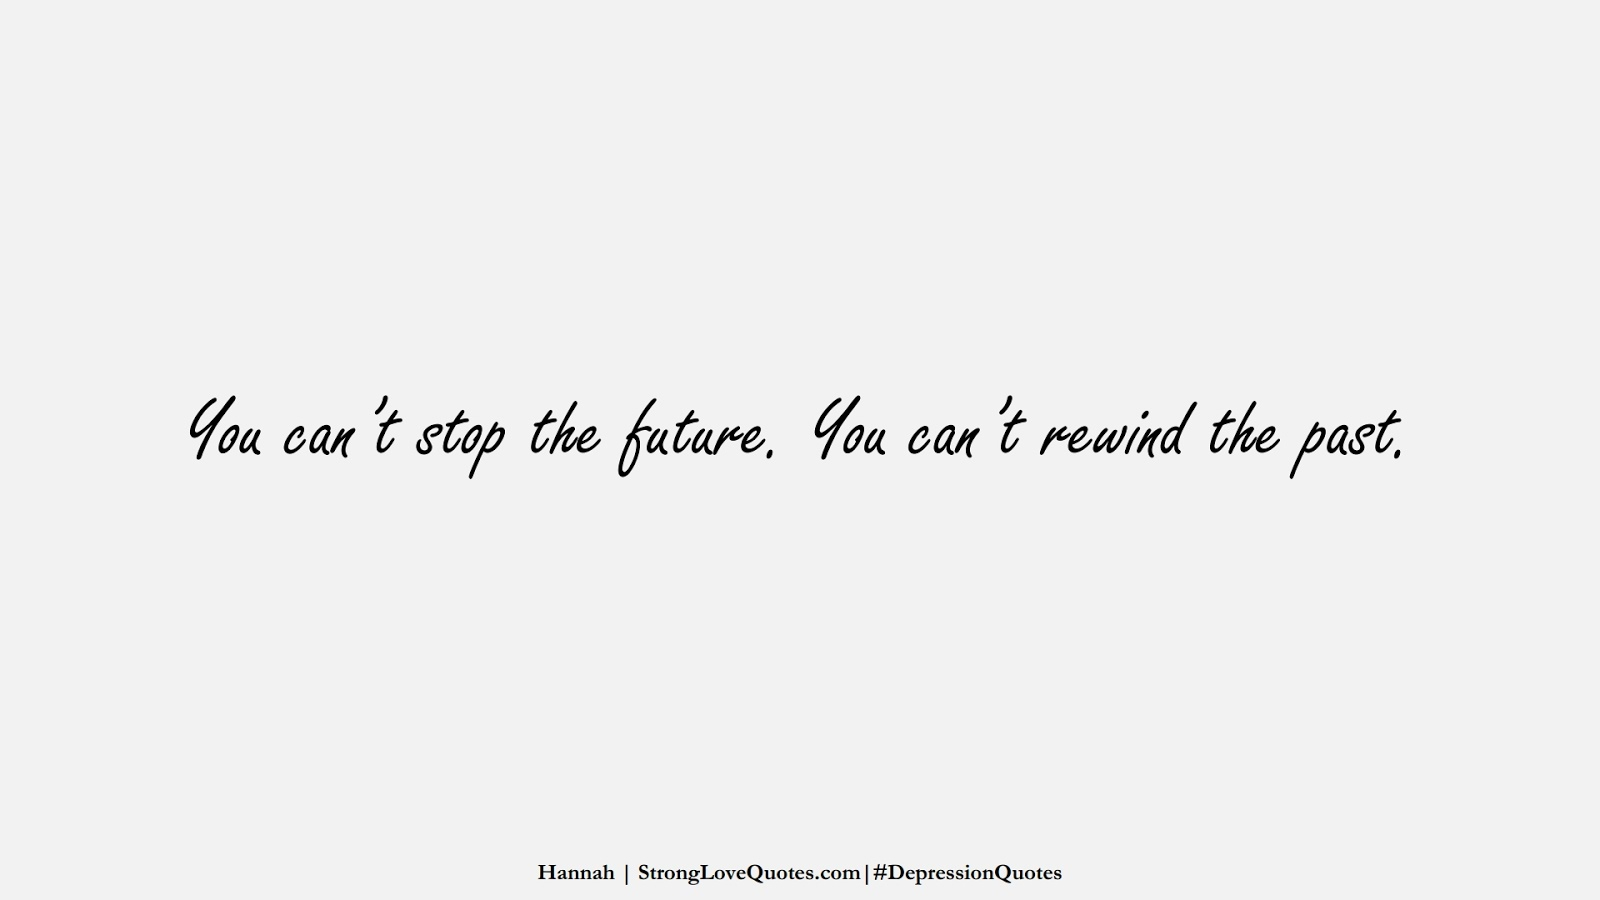 You can't stop the future. You can't rewind the past. (Hannah);  #DepressionQuotes